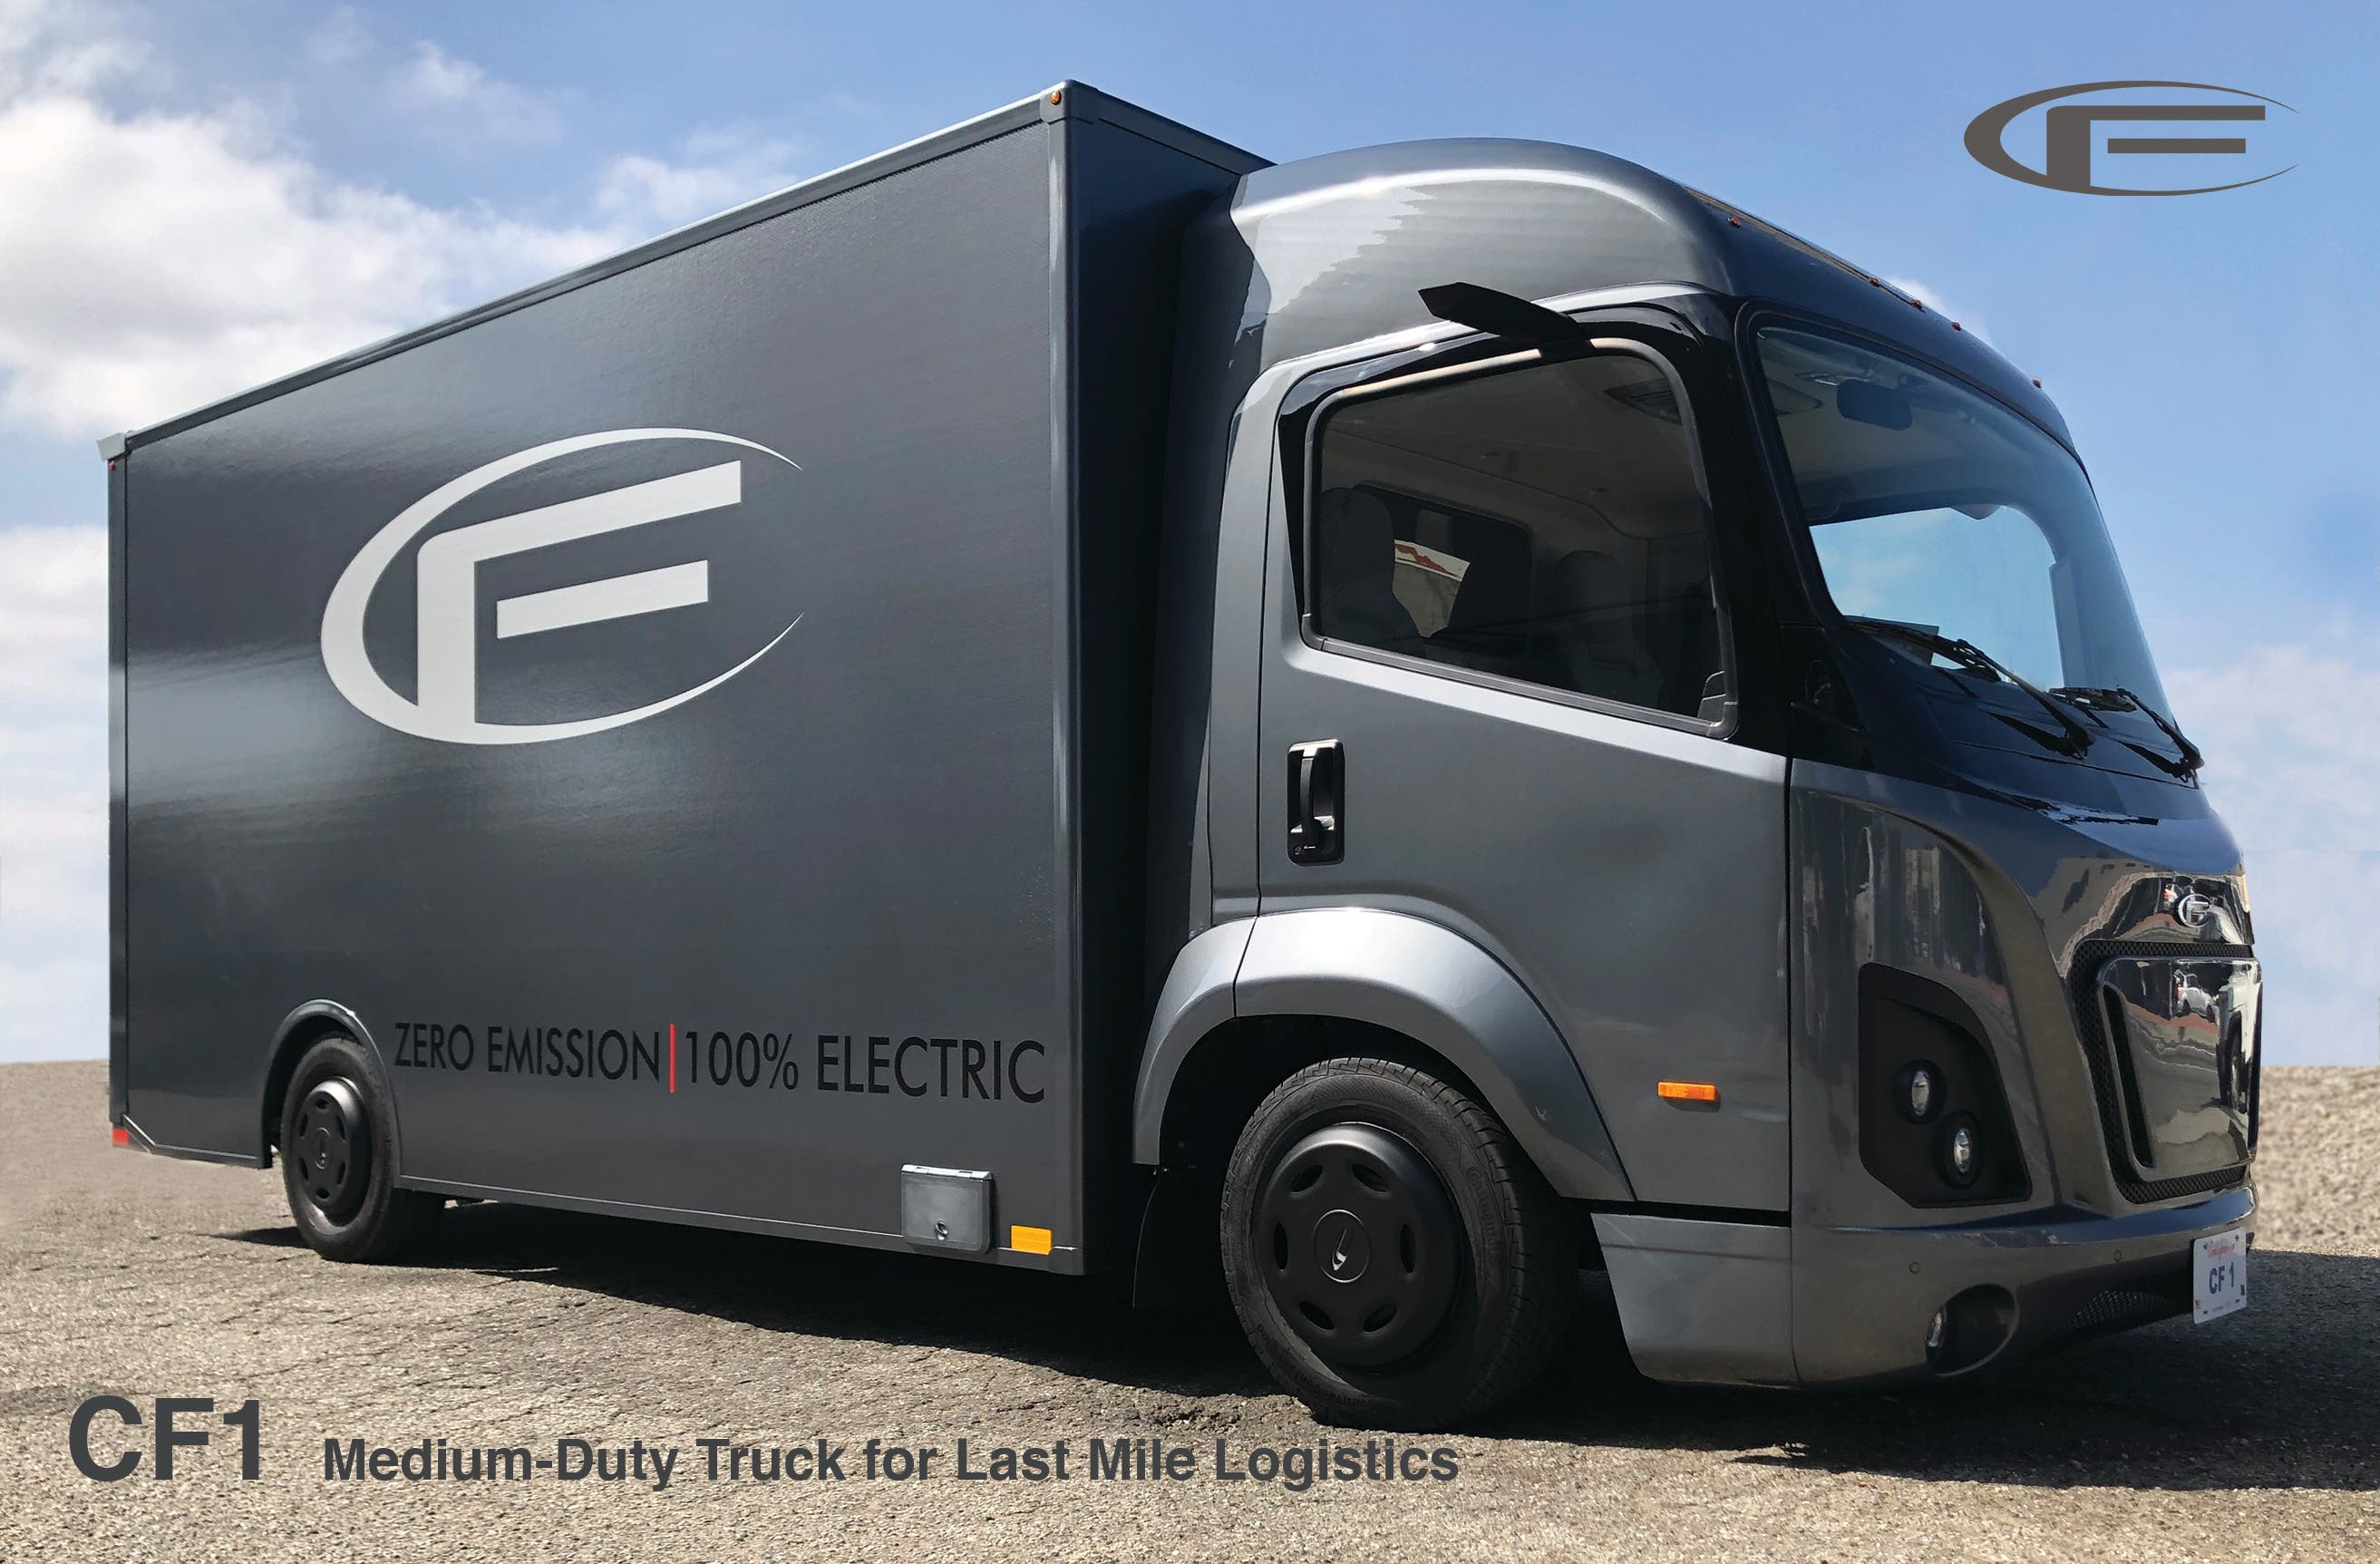 CityFreighter Unveils Its Electric CF1 Prototype Class 4 Truck At ACT Expo | #CleanTechnica Exclusive